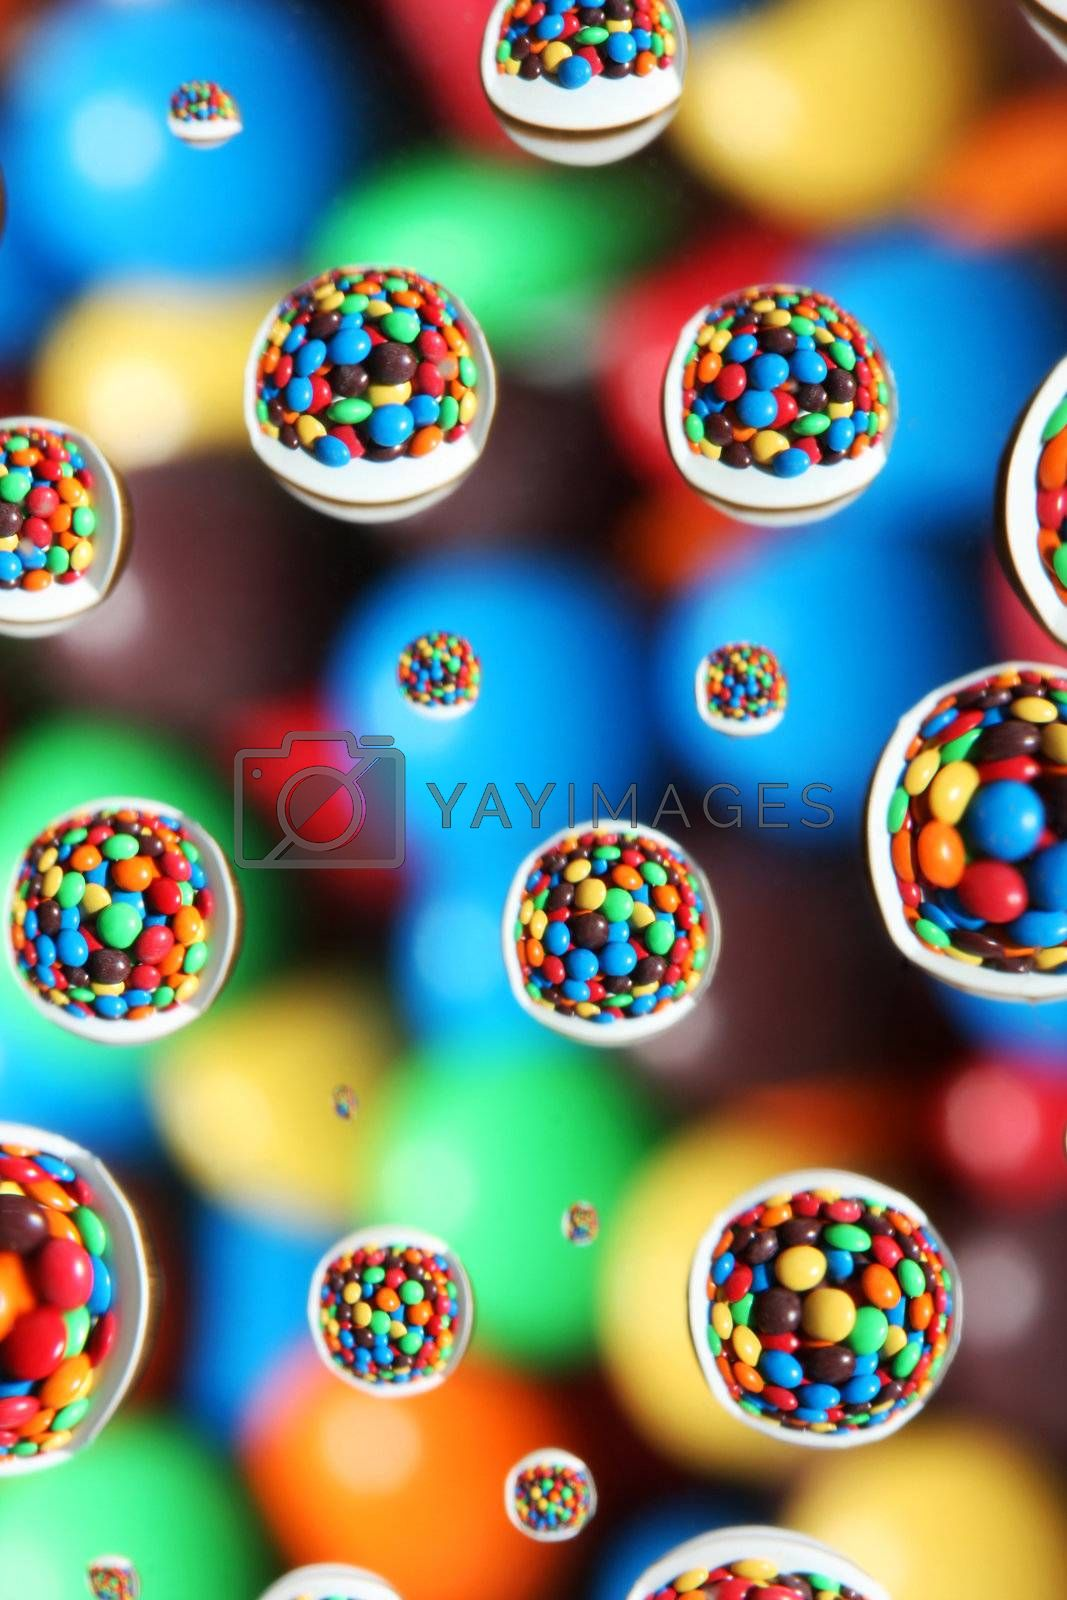 abstract background,colorful candies reflected in water drops